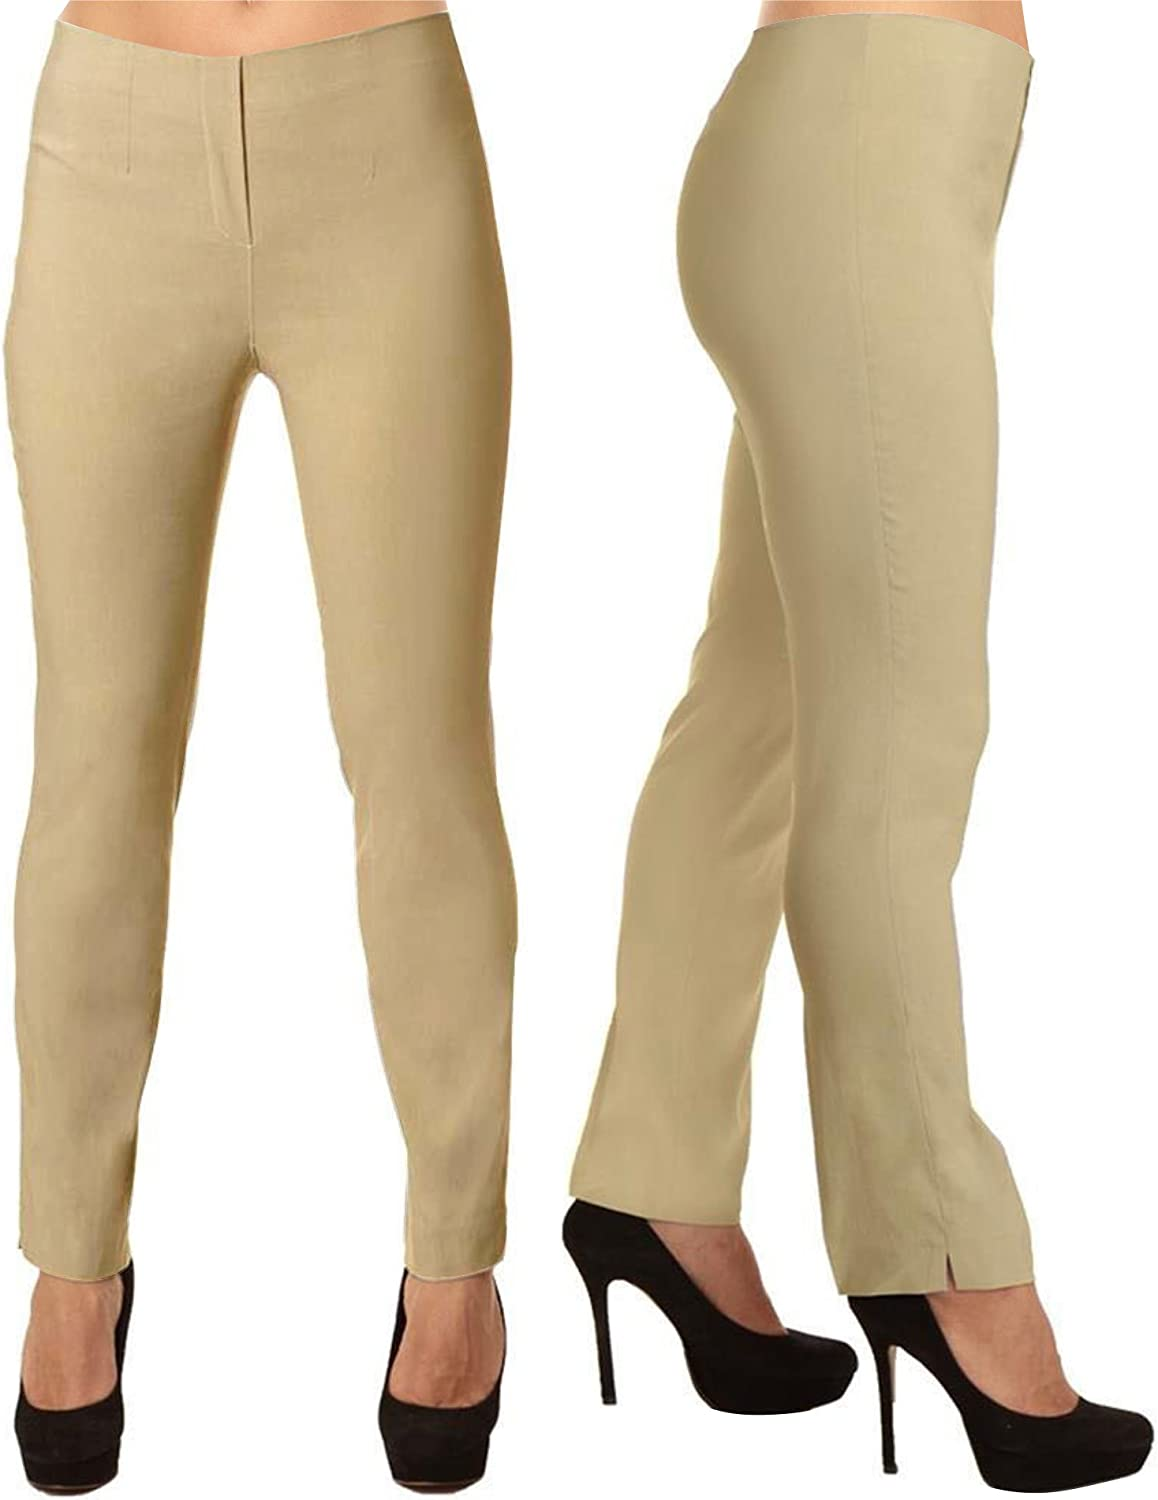 LIOR PARIS LIZE a Classic Fit Straight Pant for Everybody.